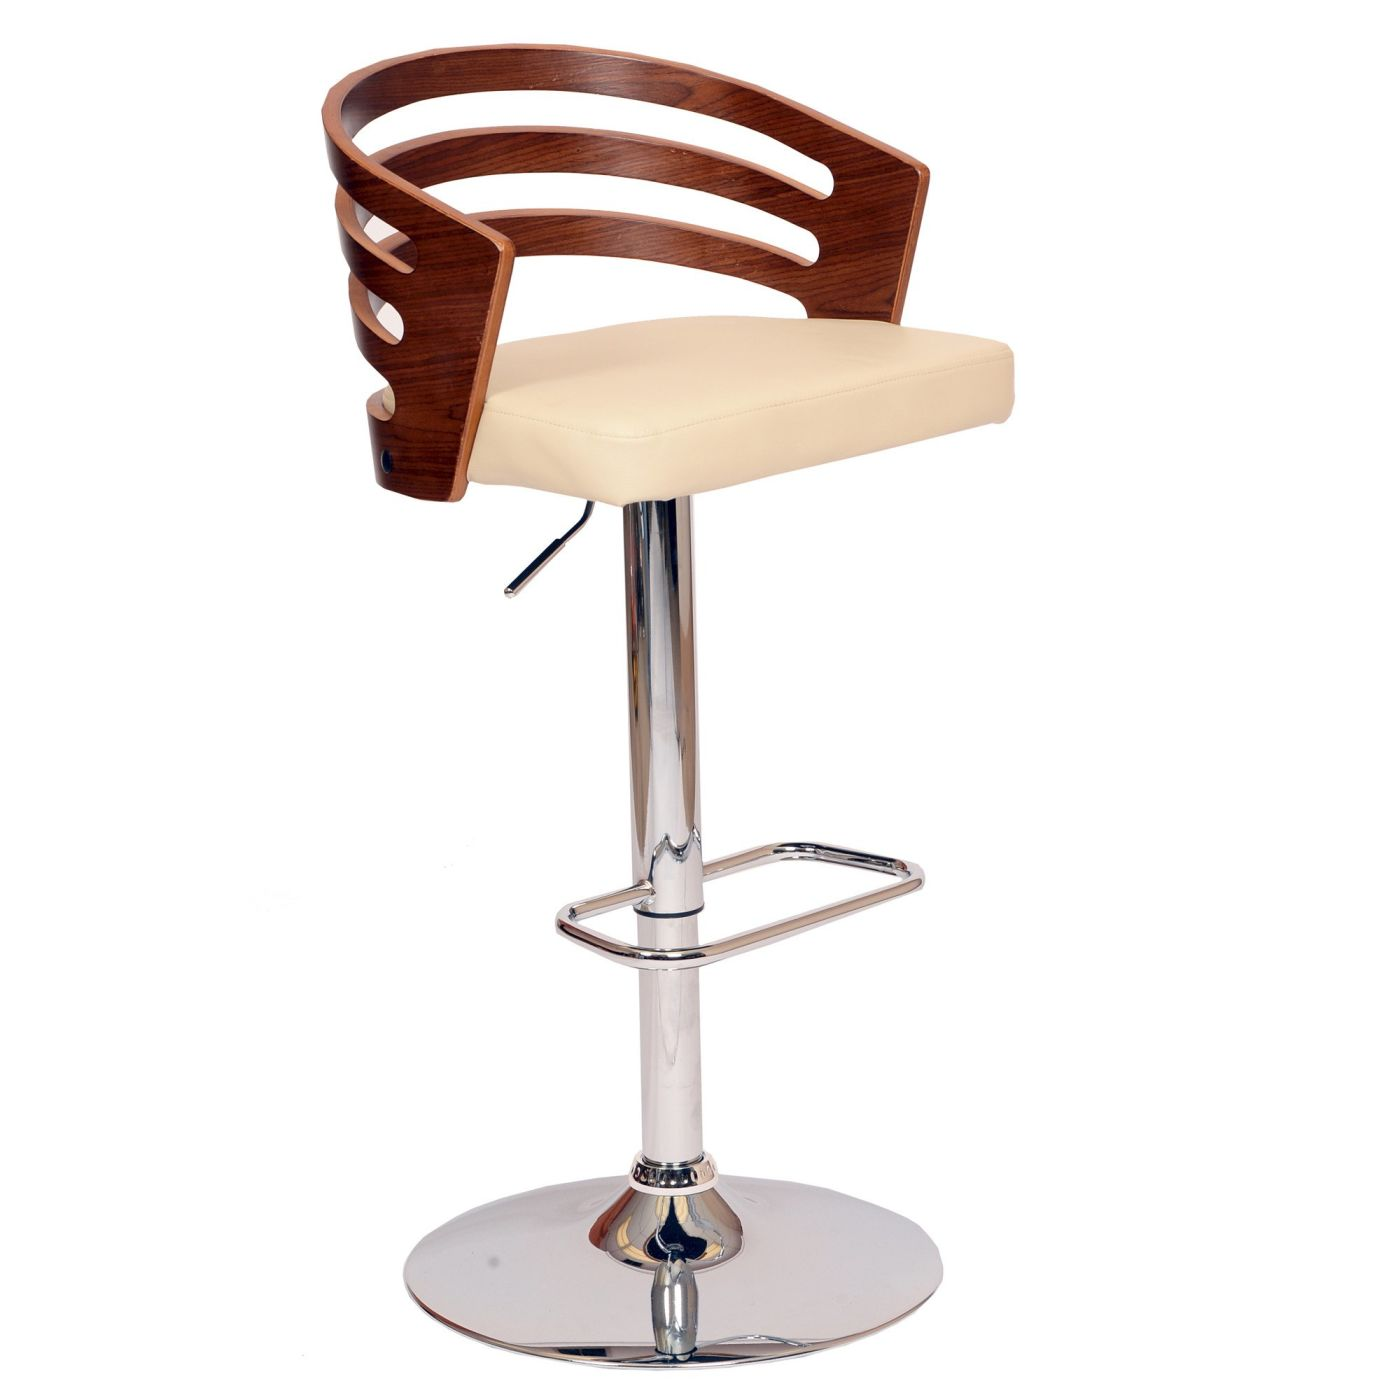 Incredible Buy Armen Living Lcadswbacrwa Adele Swivel Barstool In Cream Pu Walnut And Chrome Base At Contemporary Furniture Warehouse Ncnpc Chair Design For Home Ncnpcorg